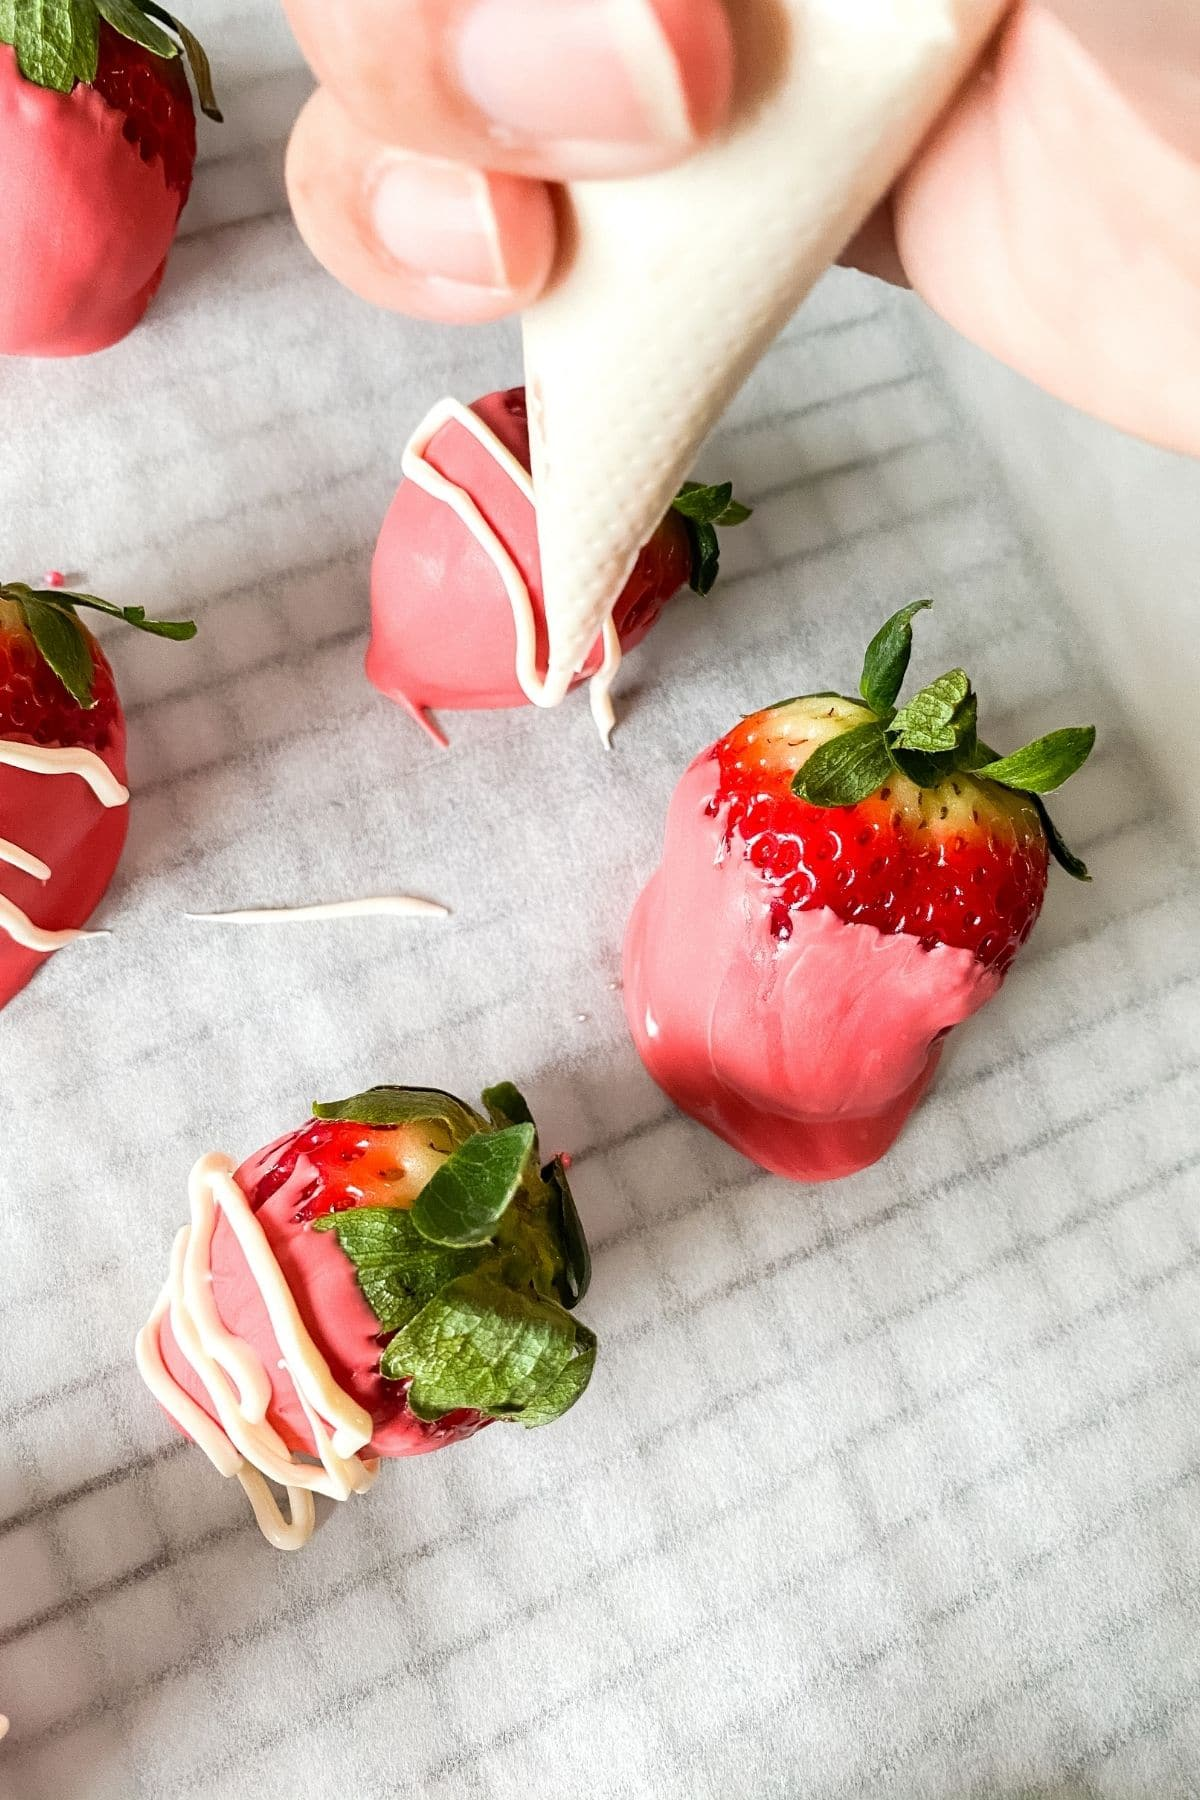 Adding white stripes to dipped berries